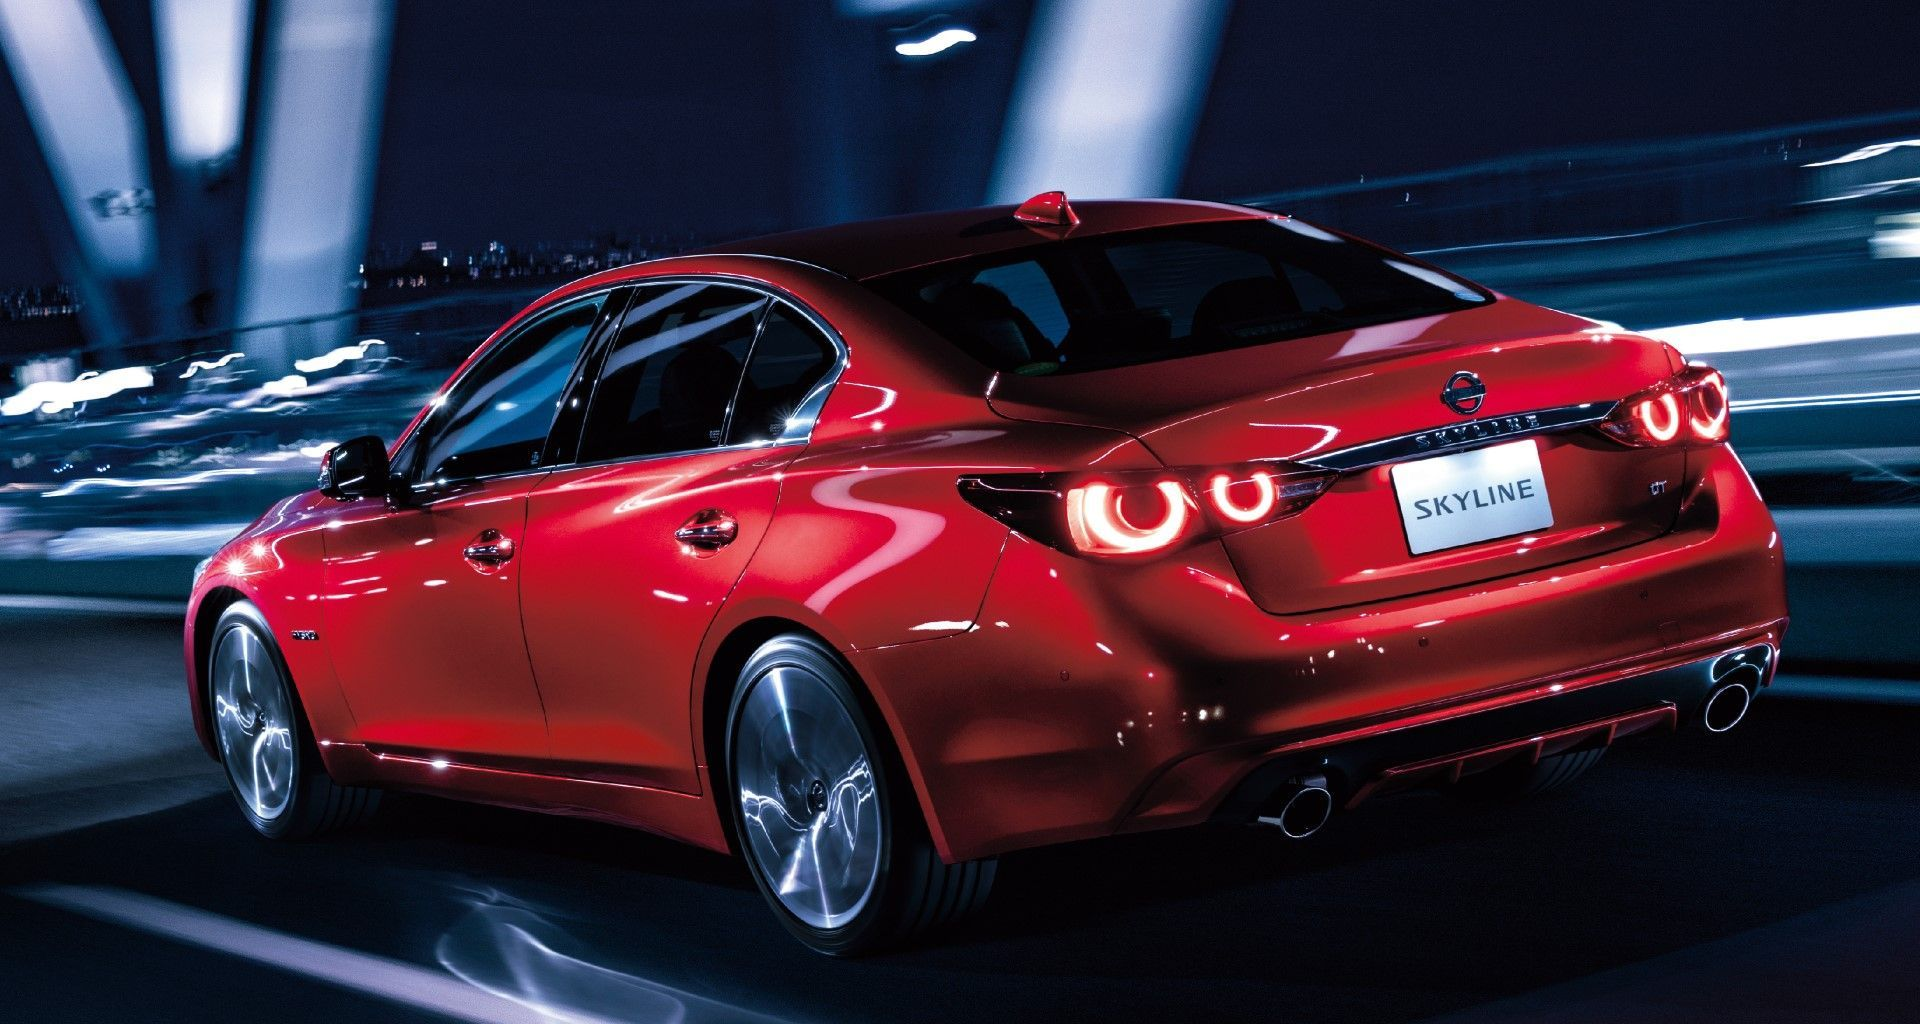 2020 Nissan Skyline [V37]. Infiniti Q50 design, with